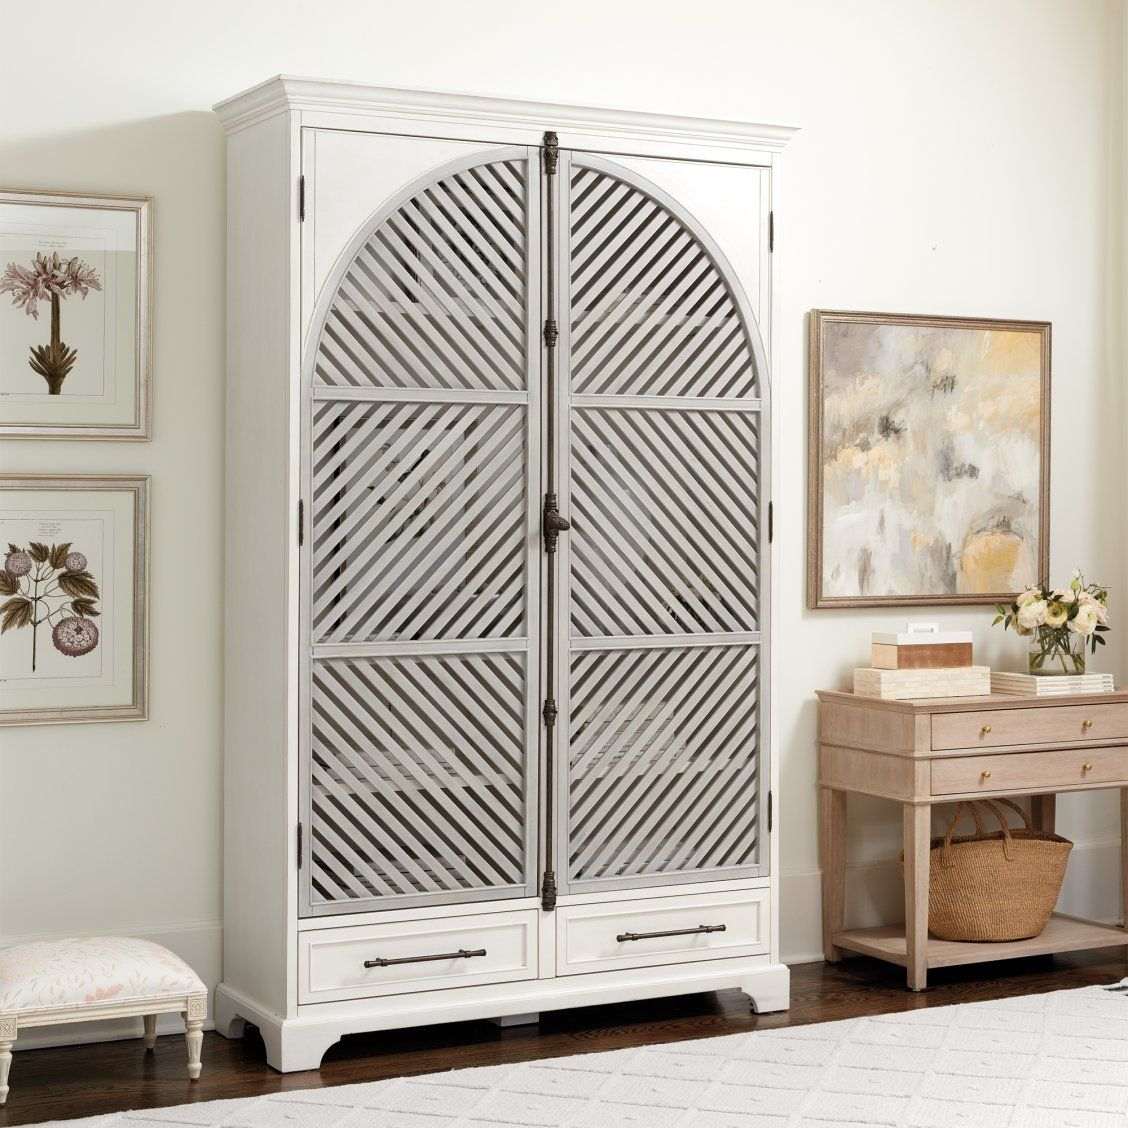 Palermo Tall Storage Cabinet Tall Cabinet Storage Furniture Living Room Storage